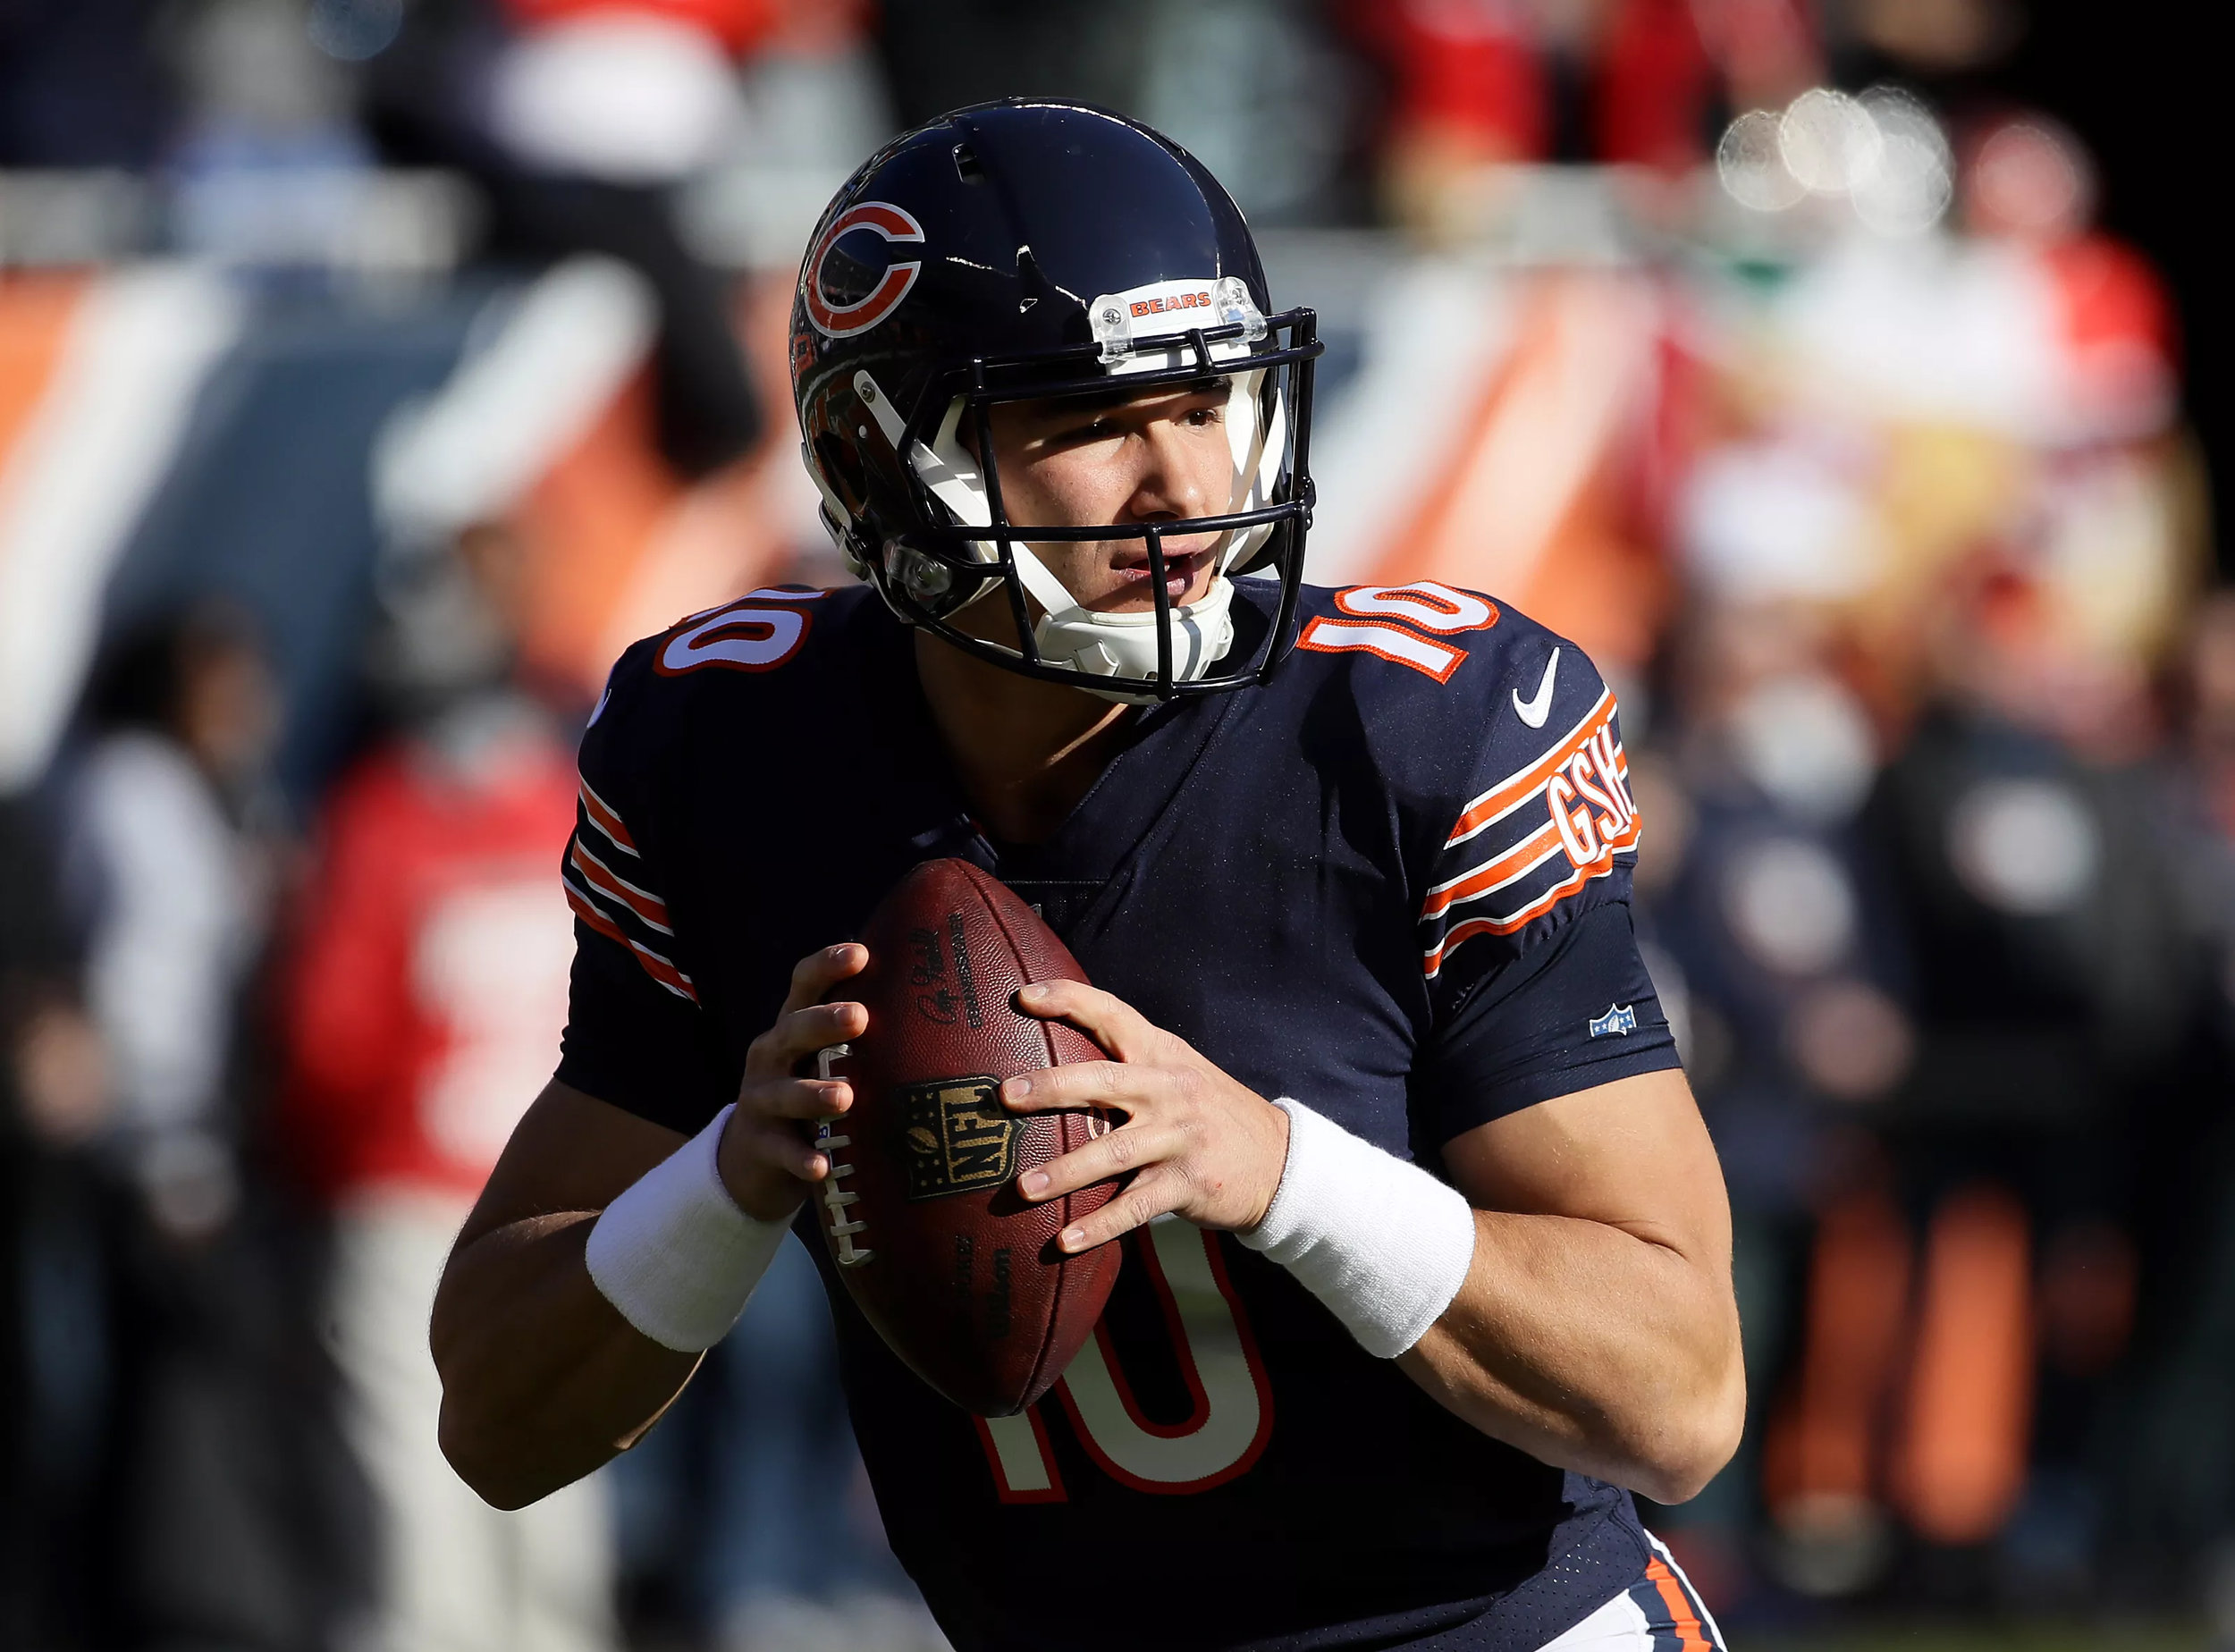 info for a61b9 39baa Mitch Trubisky Autograph Tickets - Sign & Ship Menu (Order Items) — Crave  the Auto